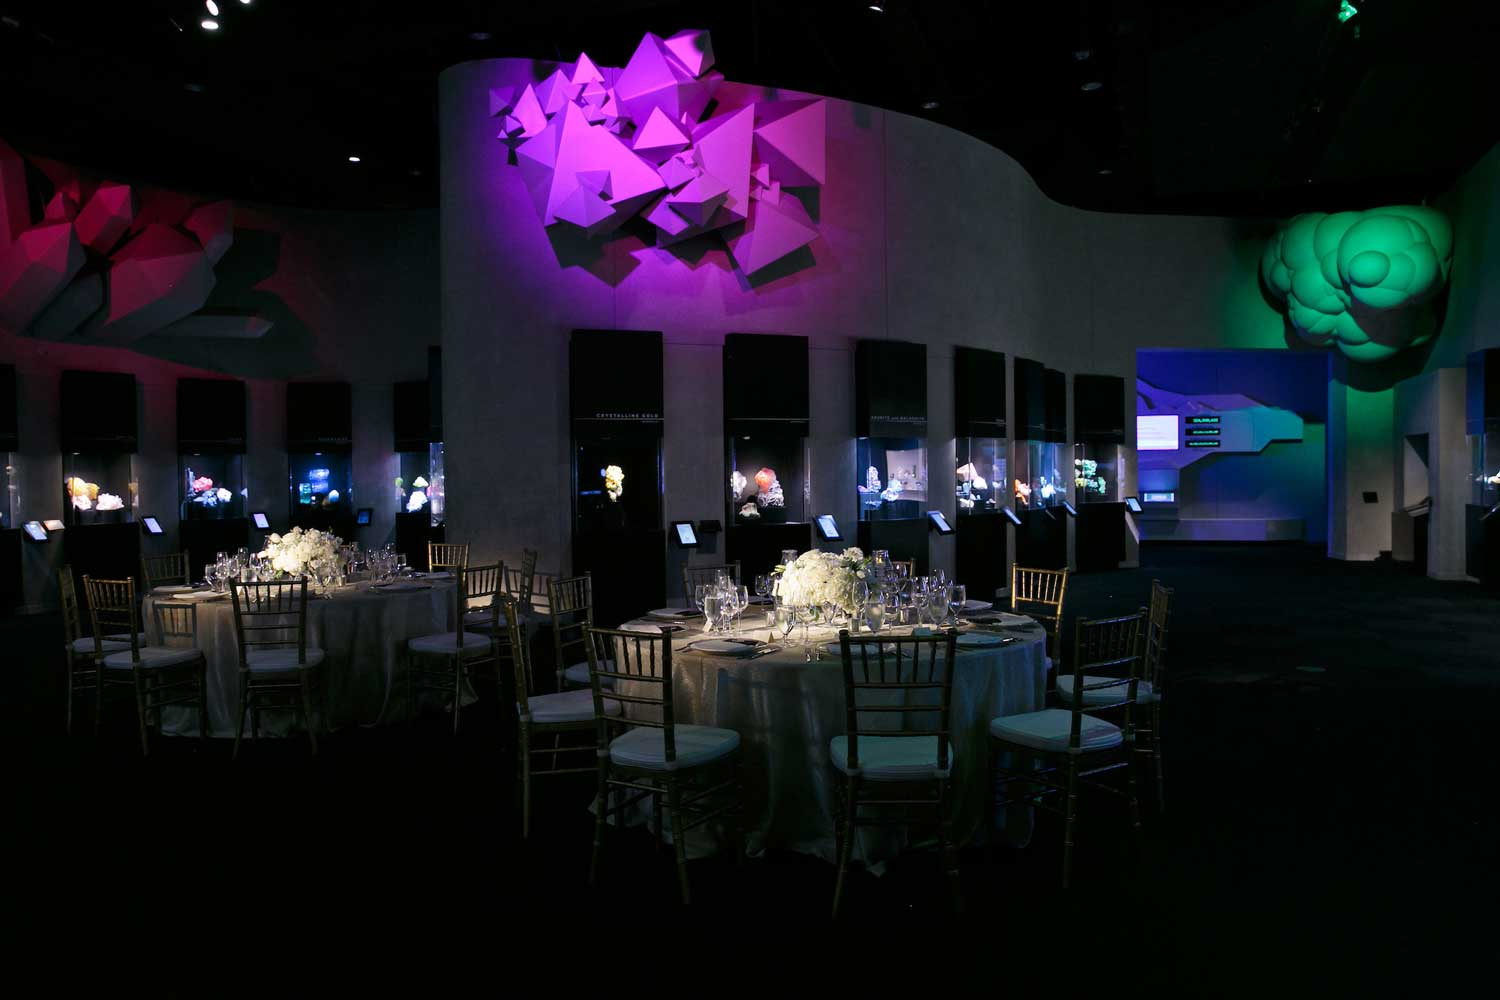 Perot Museum of Nature and Science Dallas Texas wedding reception dark lighting